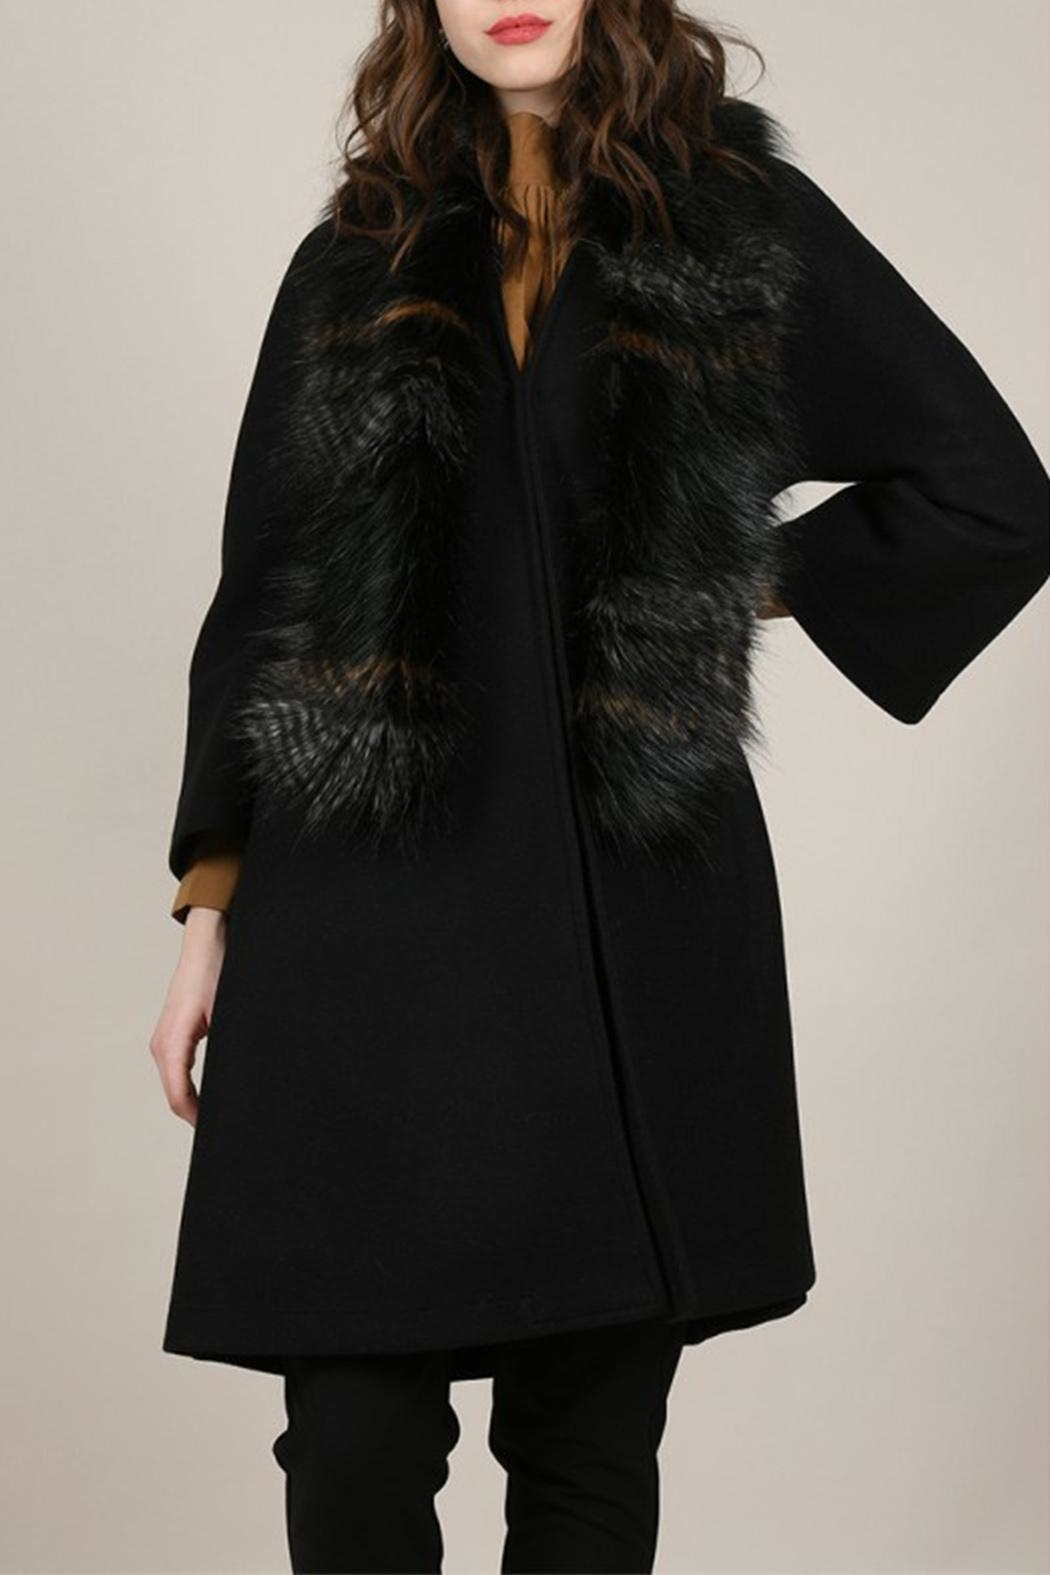 Molly Bracken Overlay Coat - Main Image